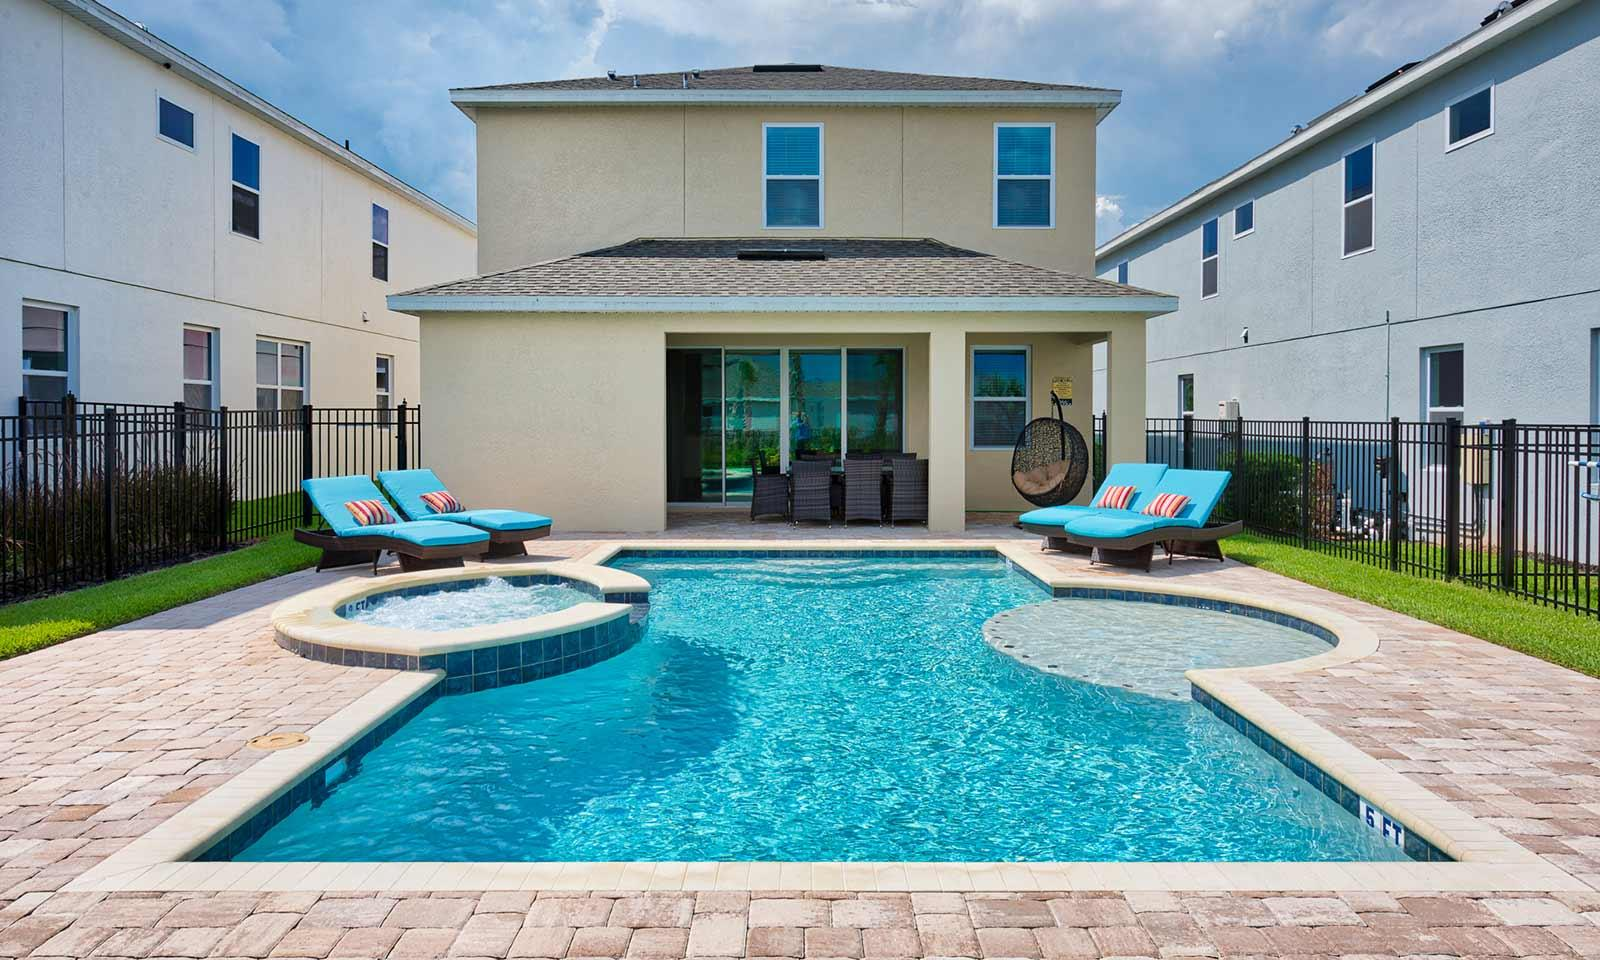 5 bedroom vacation home with a private pool in Kissimmee, FL